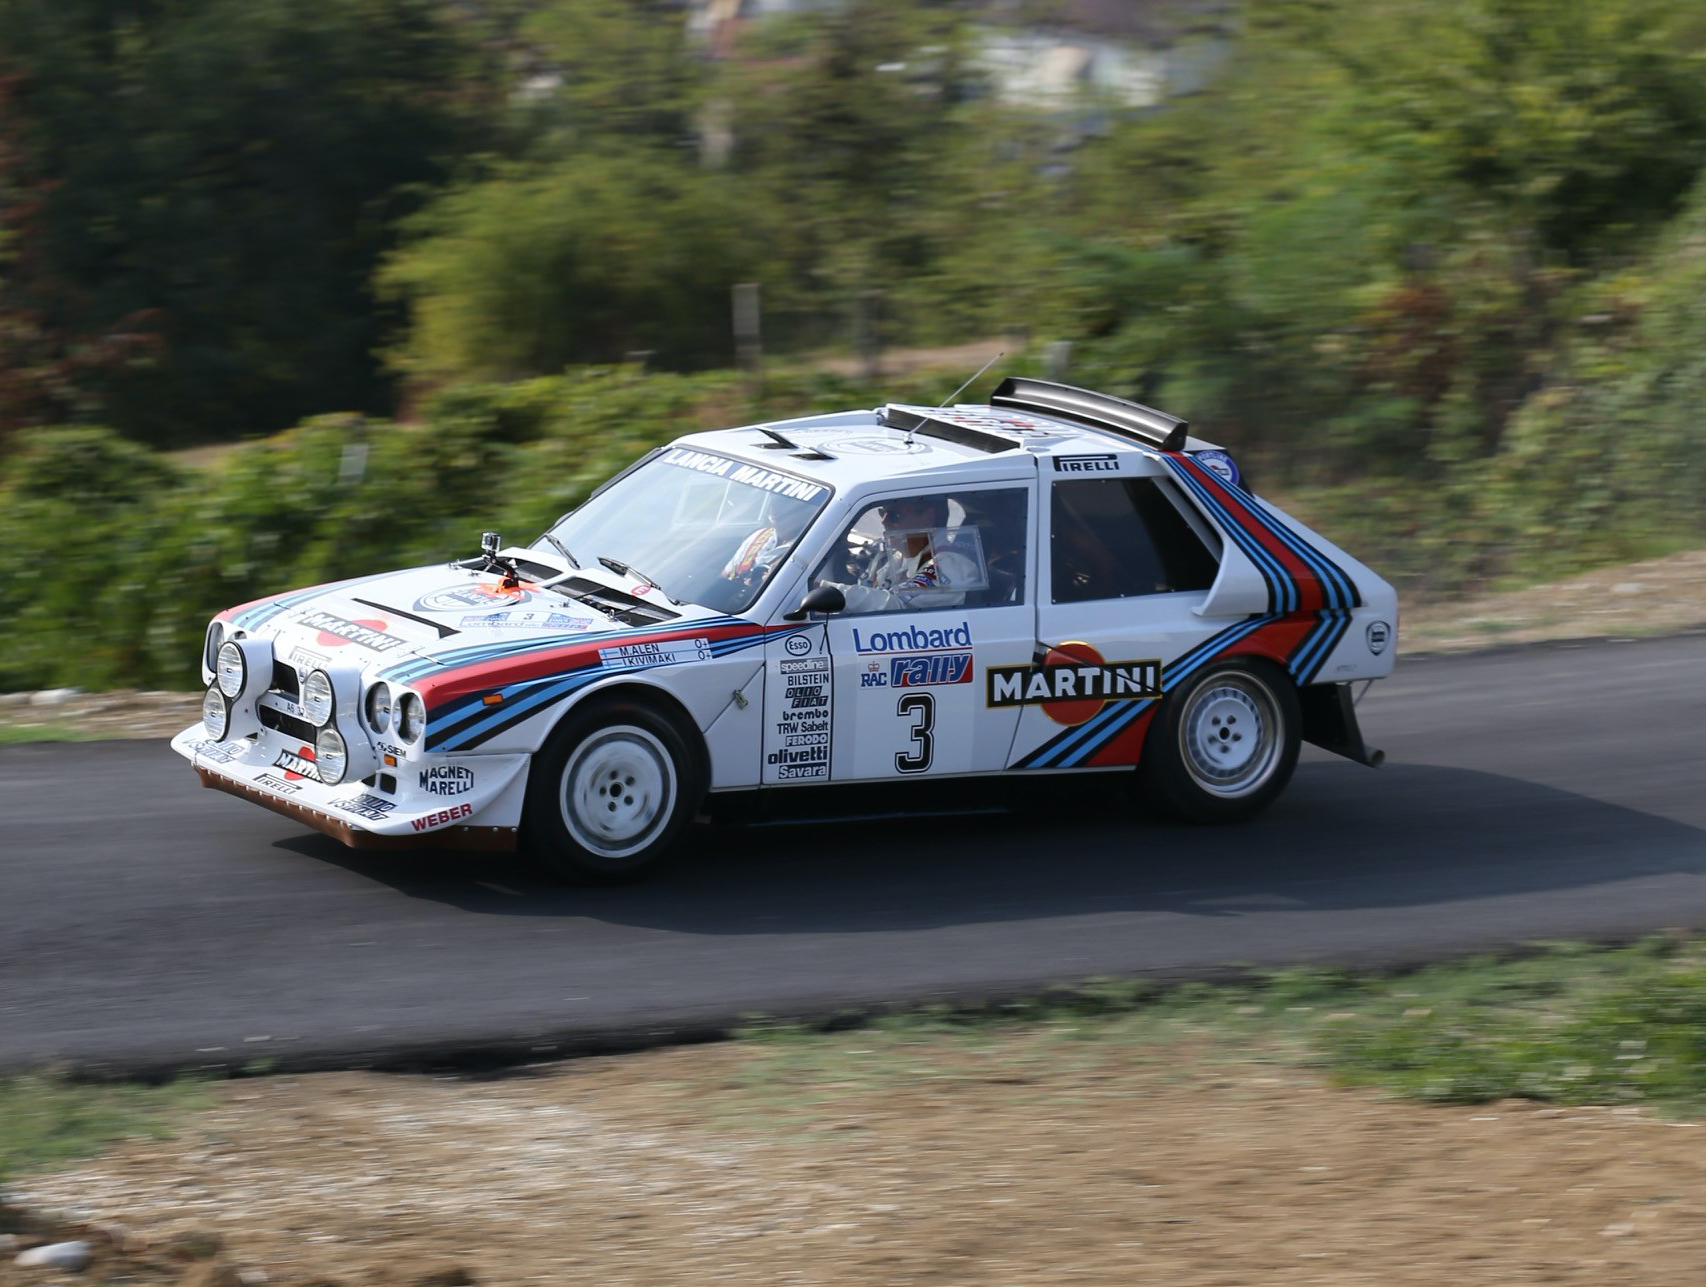 200723 1985 Lancia Delta S4 (Credit – ©2020 Courtesy of RM Sotheby's)